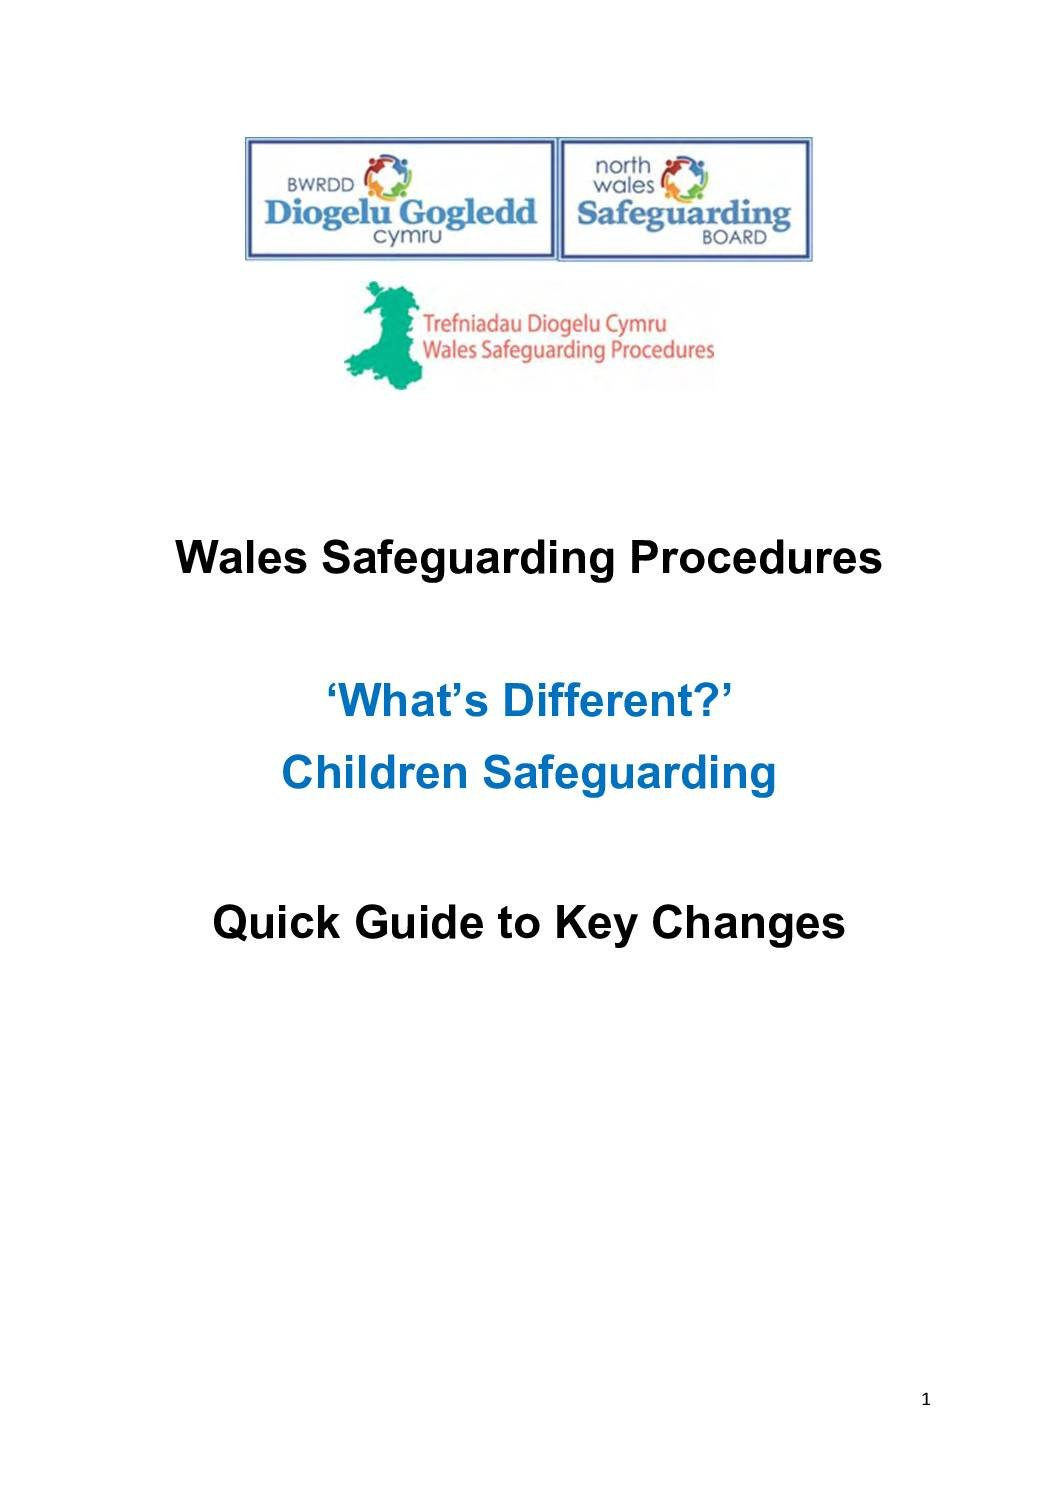 Wales Safeguarding Procedures – 'What's Different?' Children Safeguarding